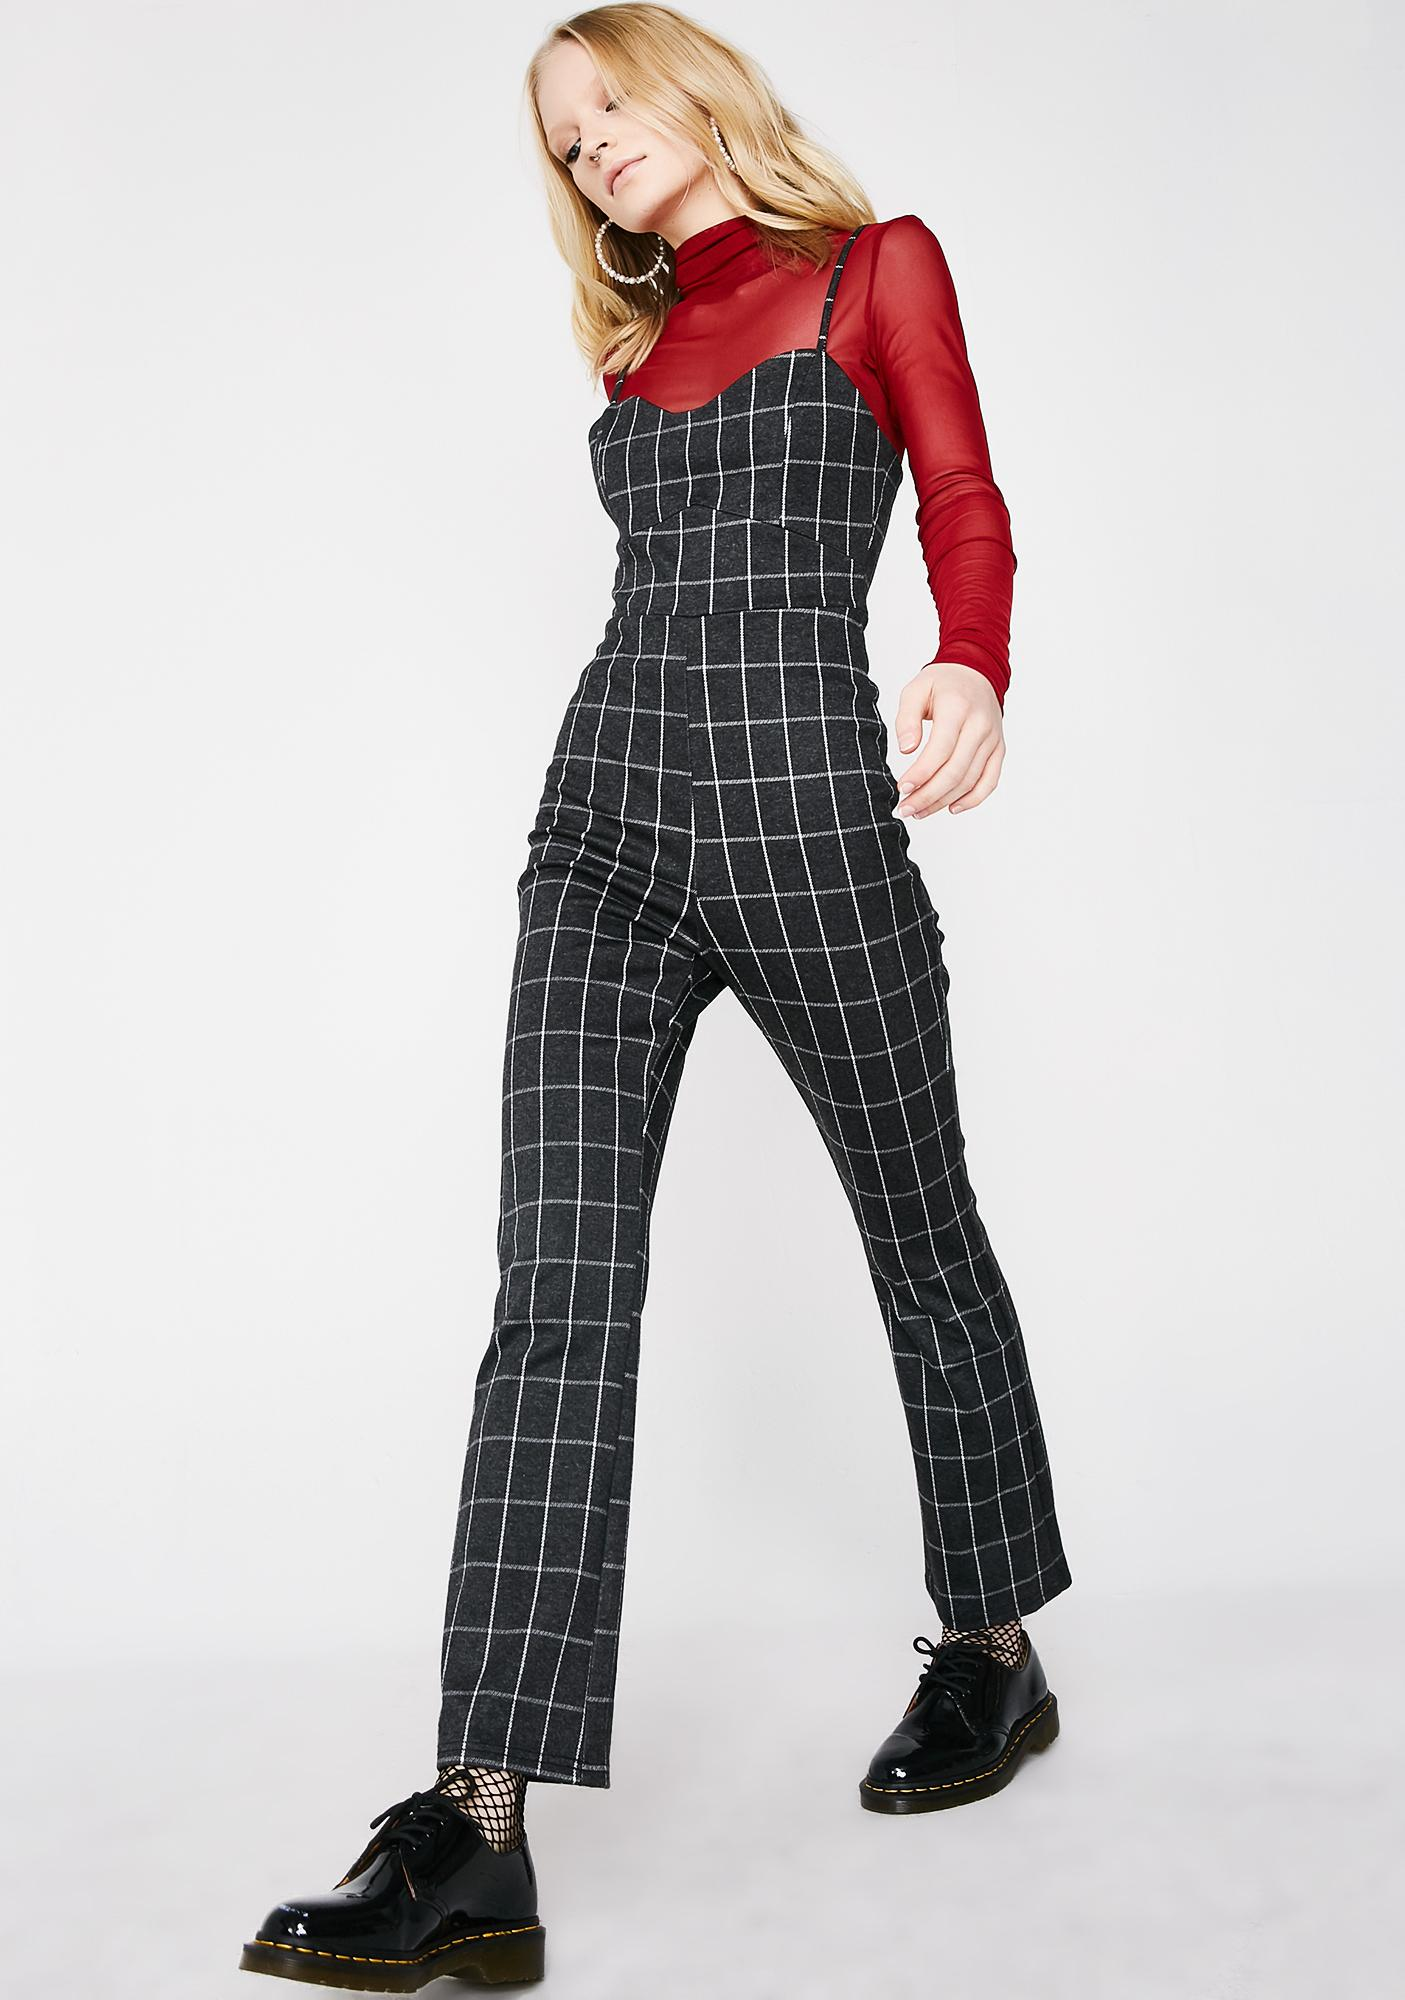 You Don't Own Me Jumpsuit